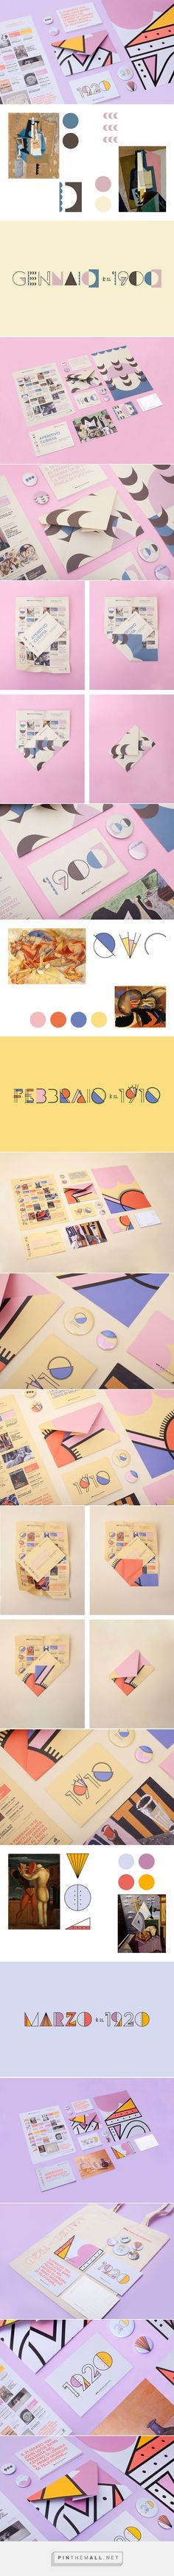 Museo del 900 – Yearly programme on Behance by Alice Donadoni